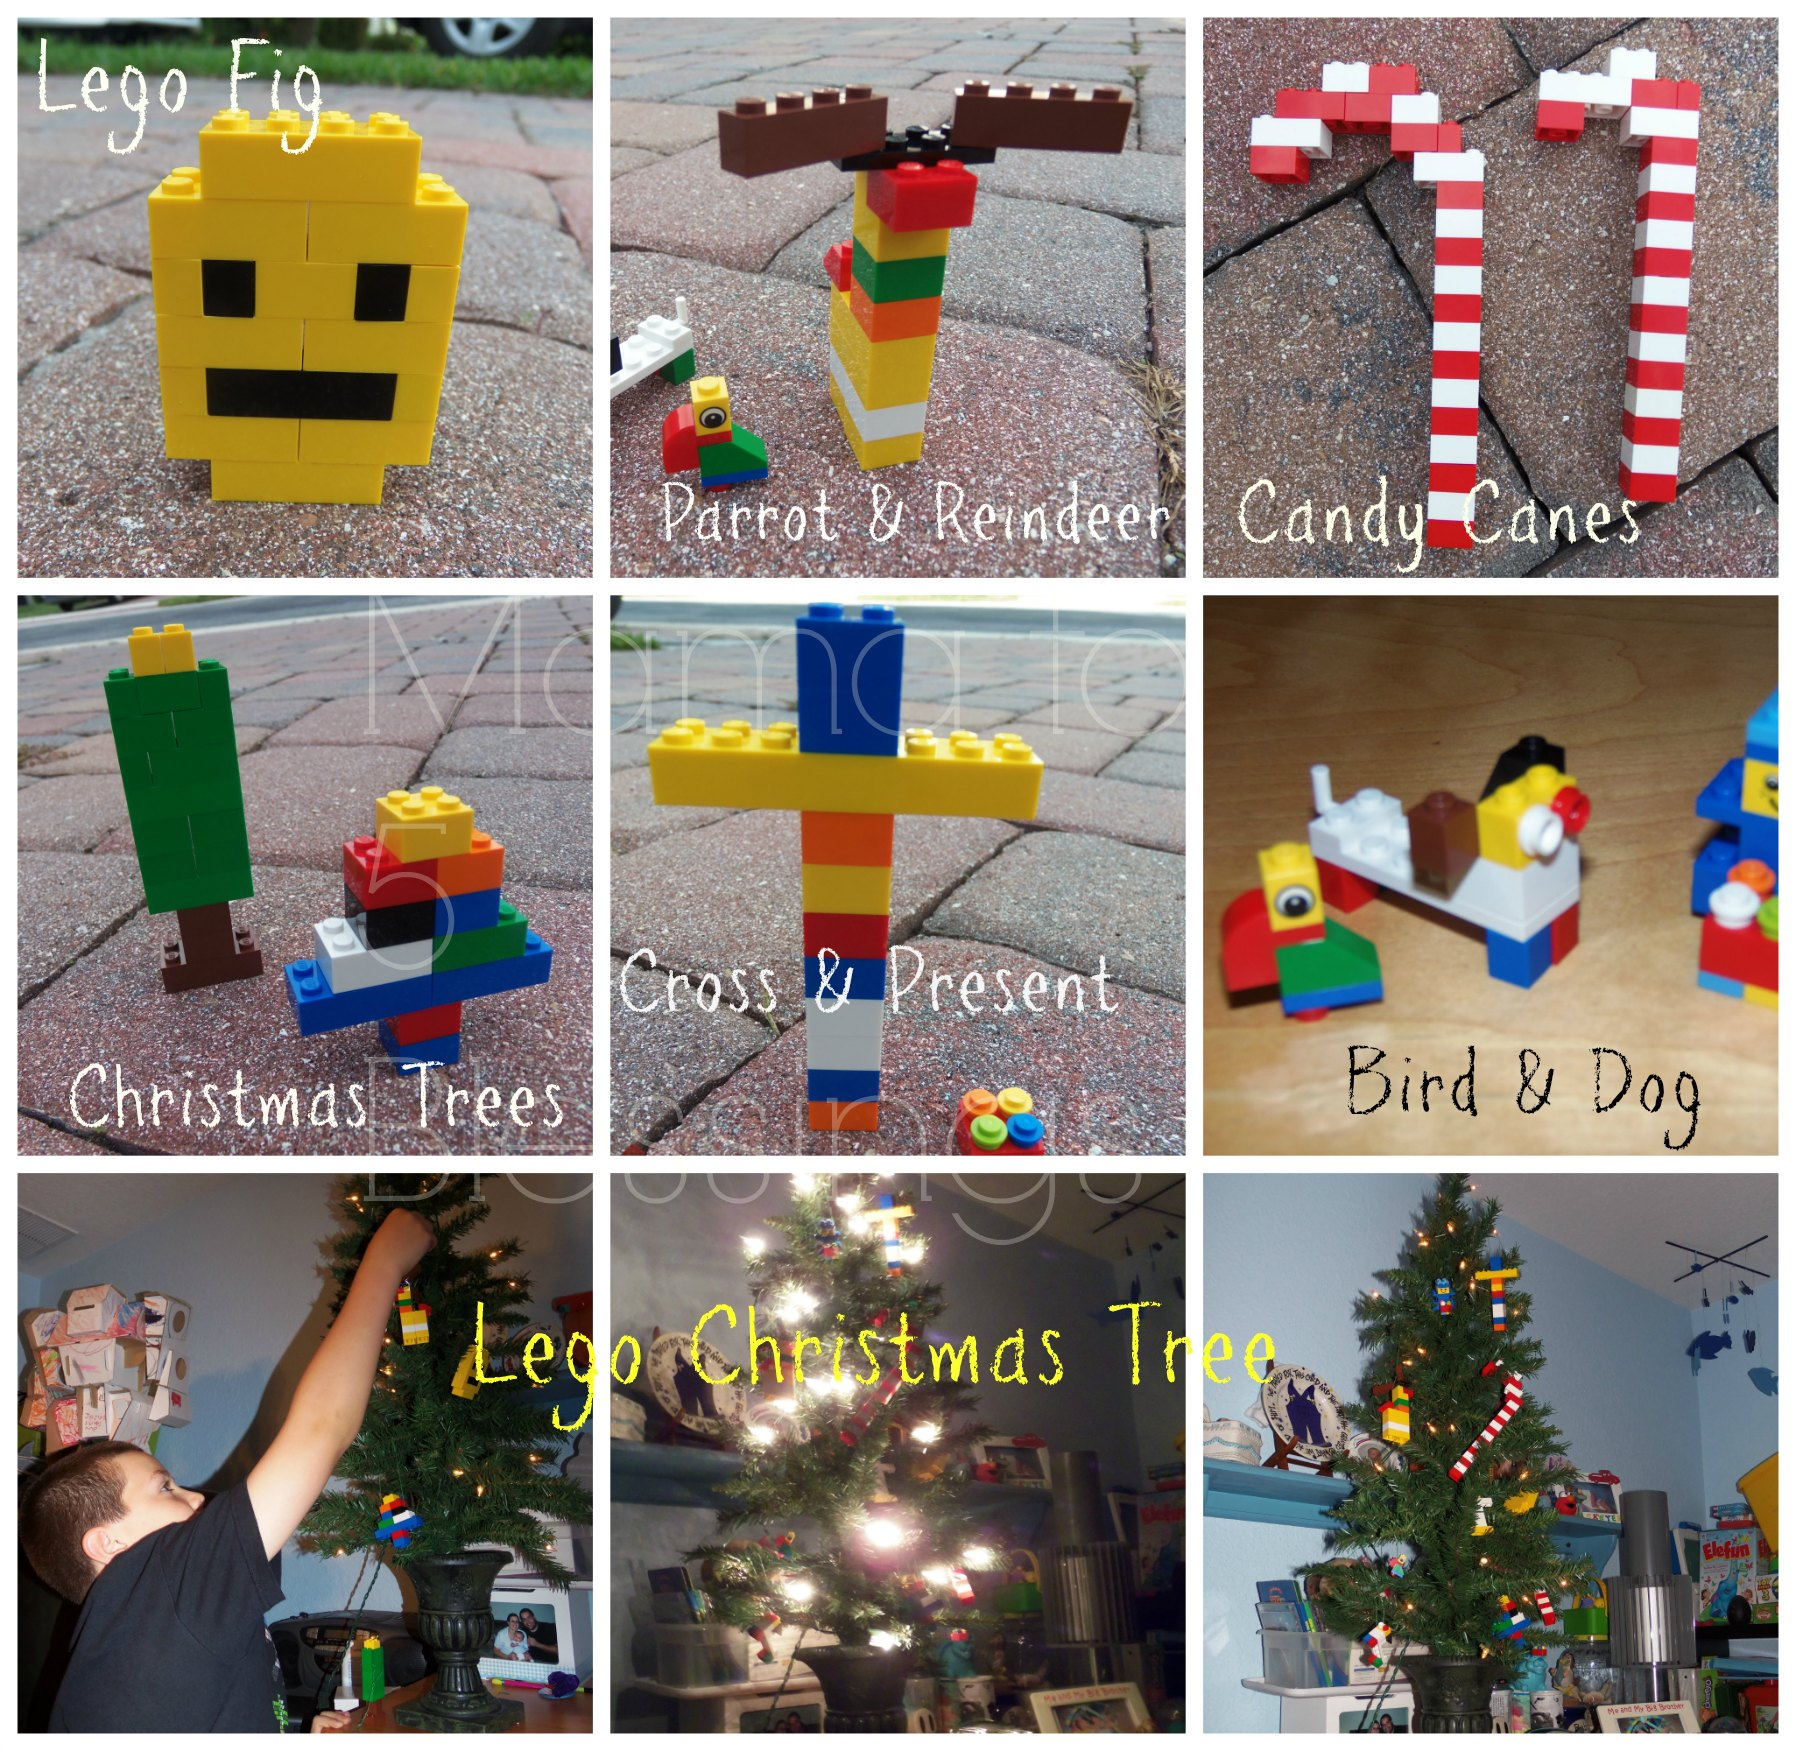 Homemade Lego Ornaments Their Lego Christmas Tree Learn Link